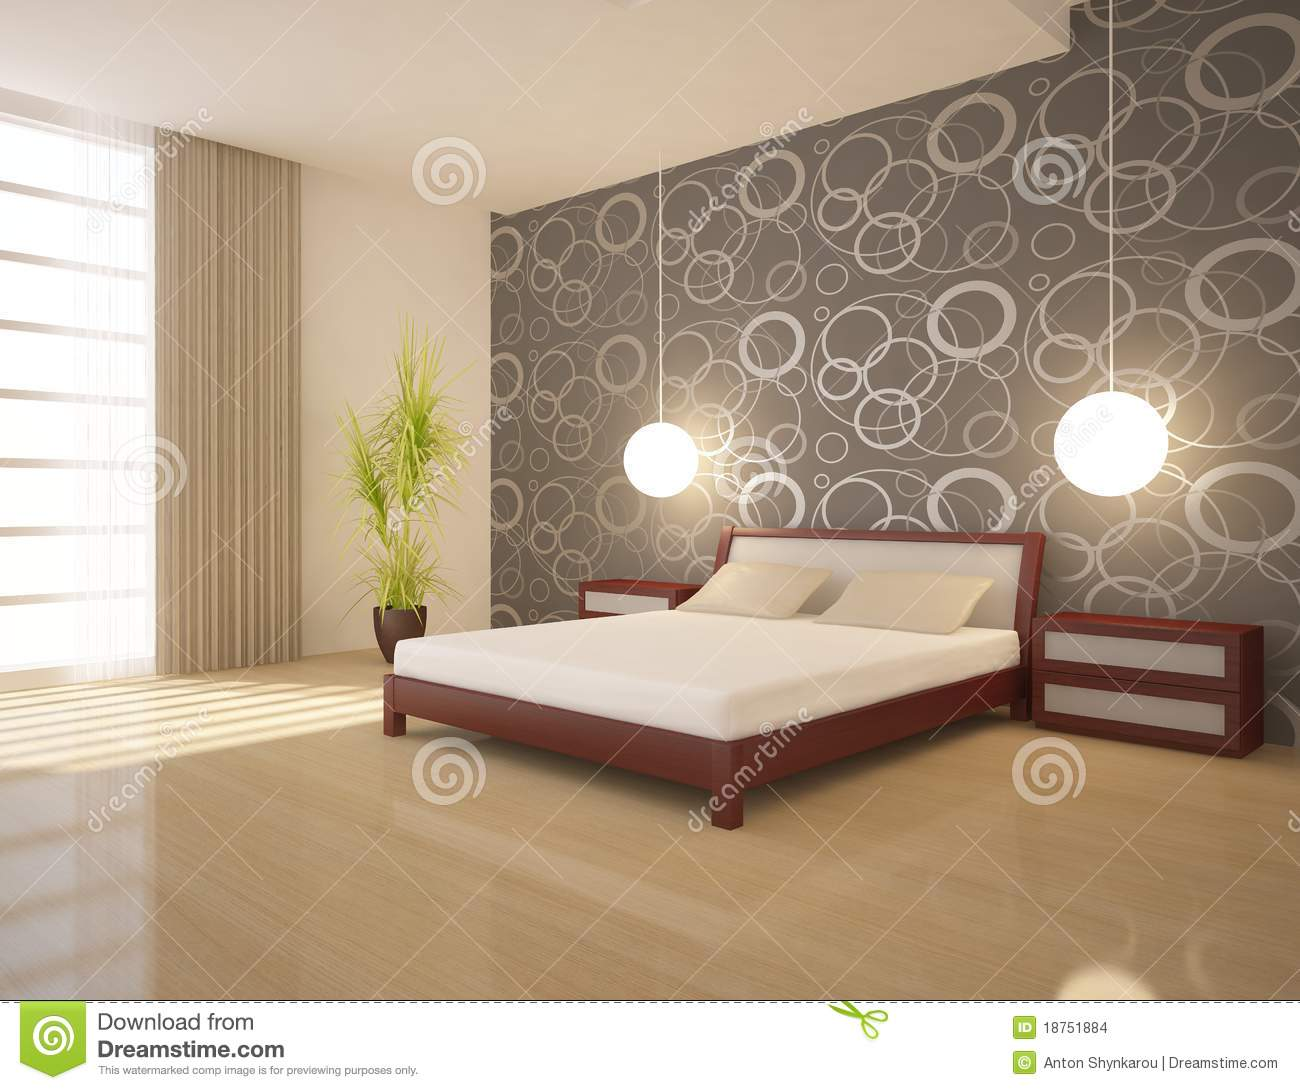 Chambre A Coucher Blanche Chambre à Coucher Blanche Images Stock Image 18751884